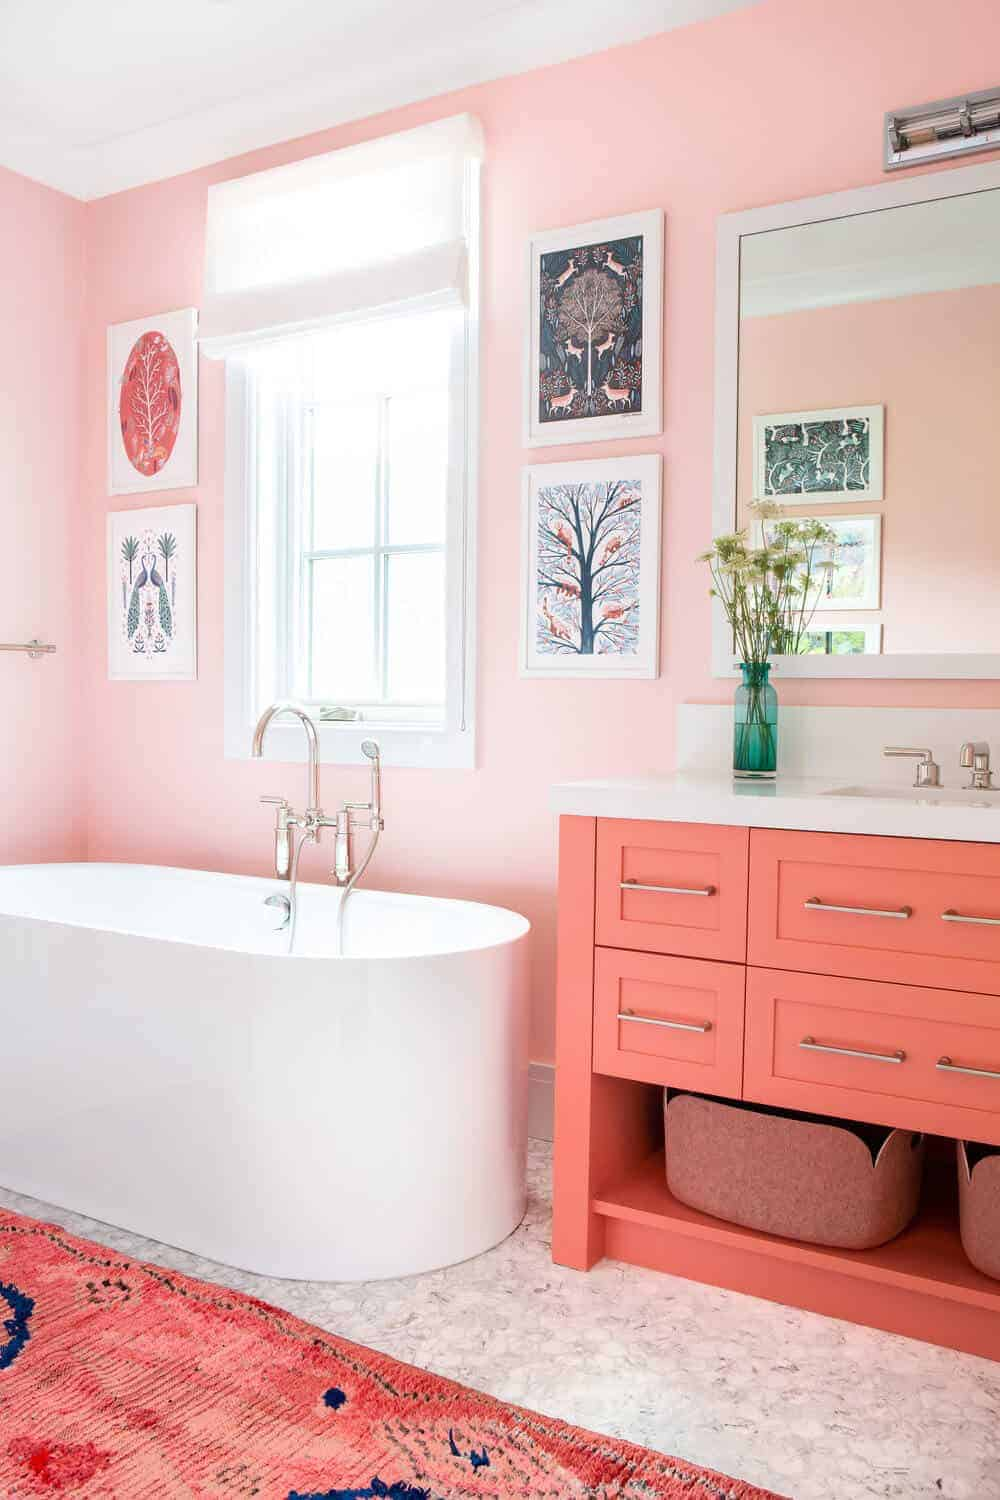 This is a beautiful chic bathroom that has various shades of pink scattered everywhere. It has a pink area rug, pink wooden vanity and light pink walls that rare adorned with framed artworks mounted above the freestanding bathtub by the window.